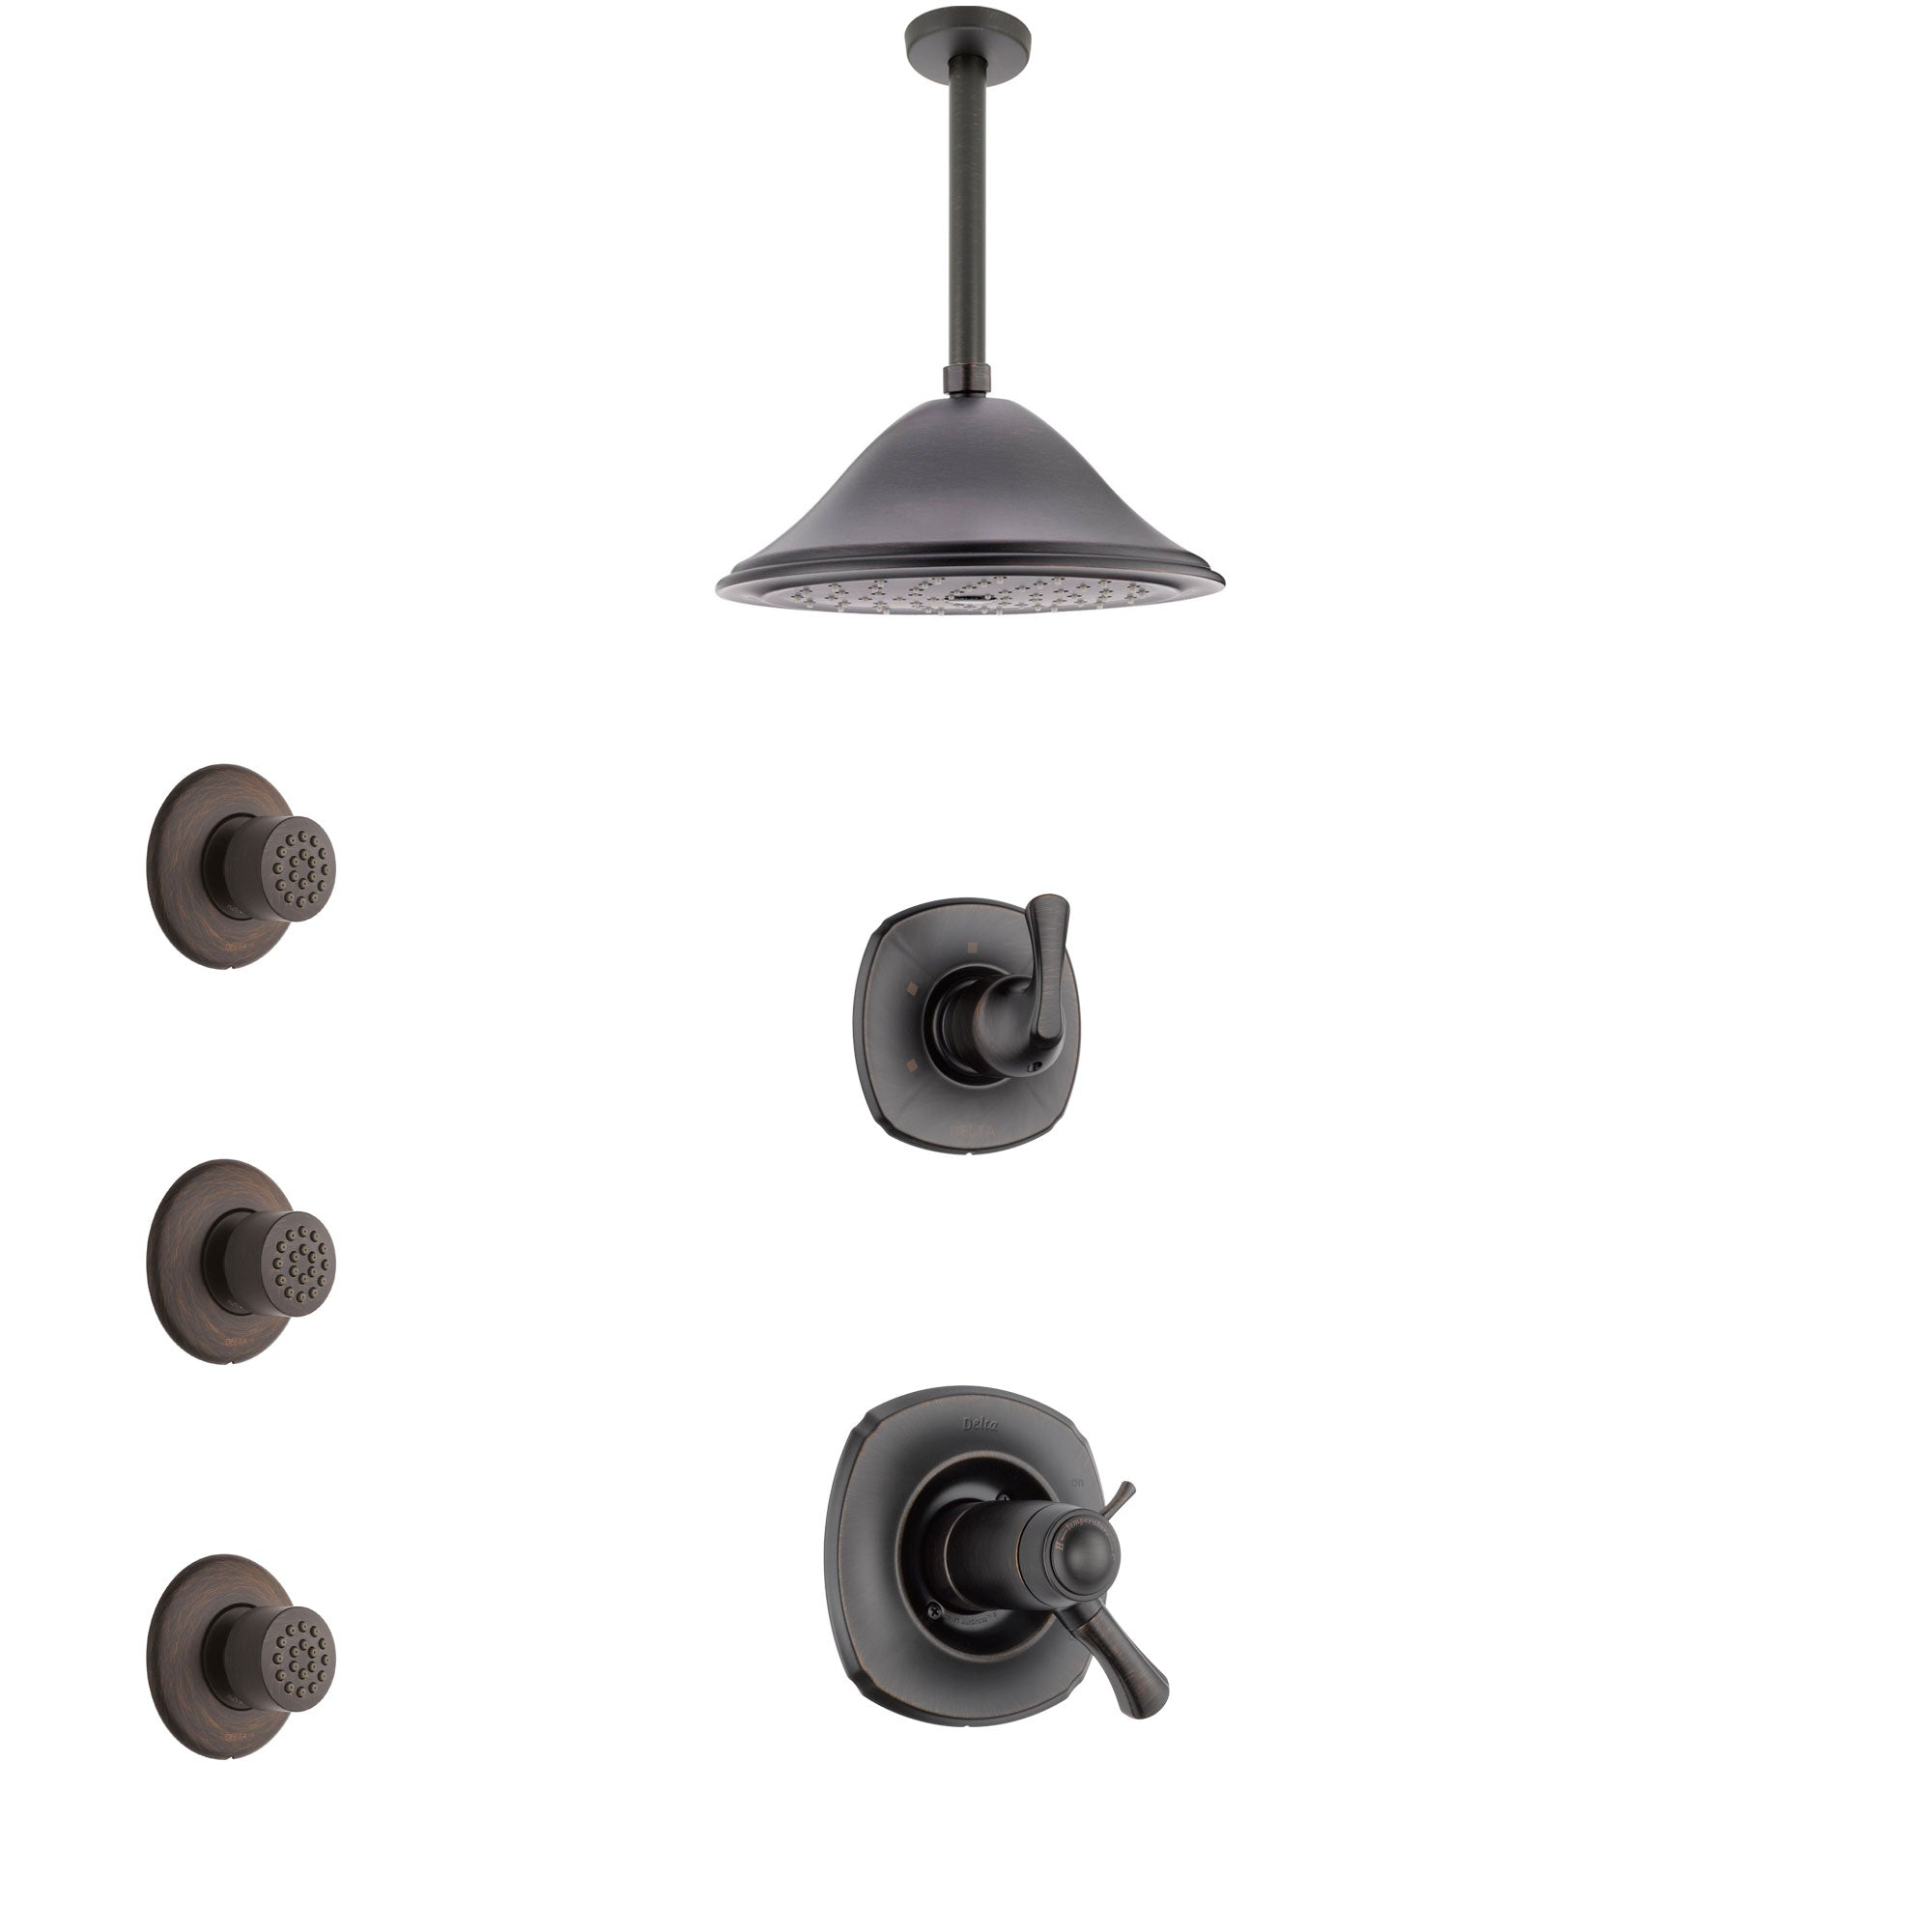 Delta Addison Venetian Bronze Shower System with Dual Thermostatic Control Handle, Diverter, Ceiling Mount Showerhead, and 3 Body Sprays SS17T921RB7